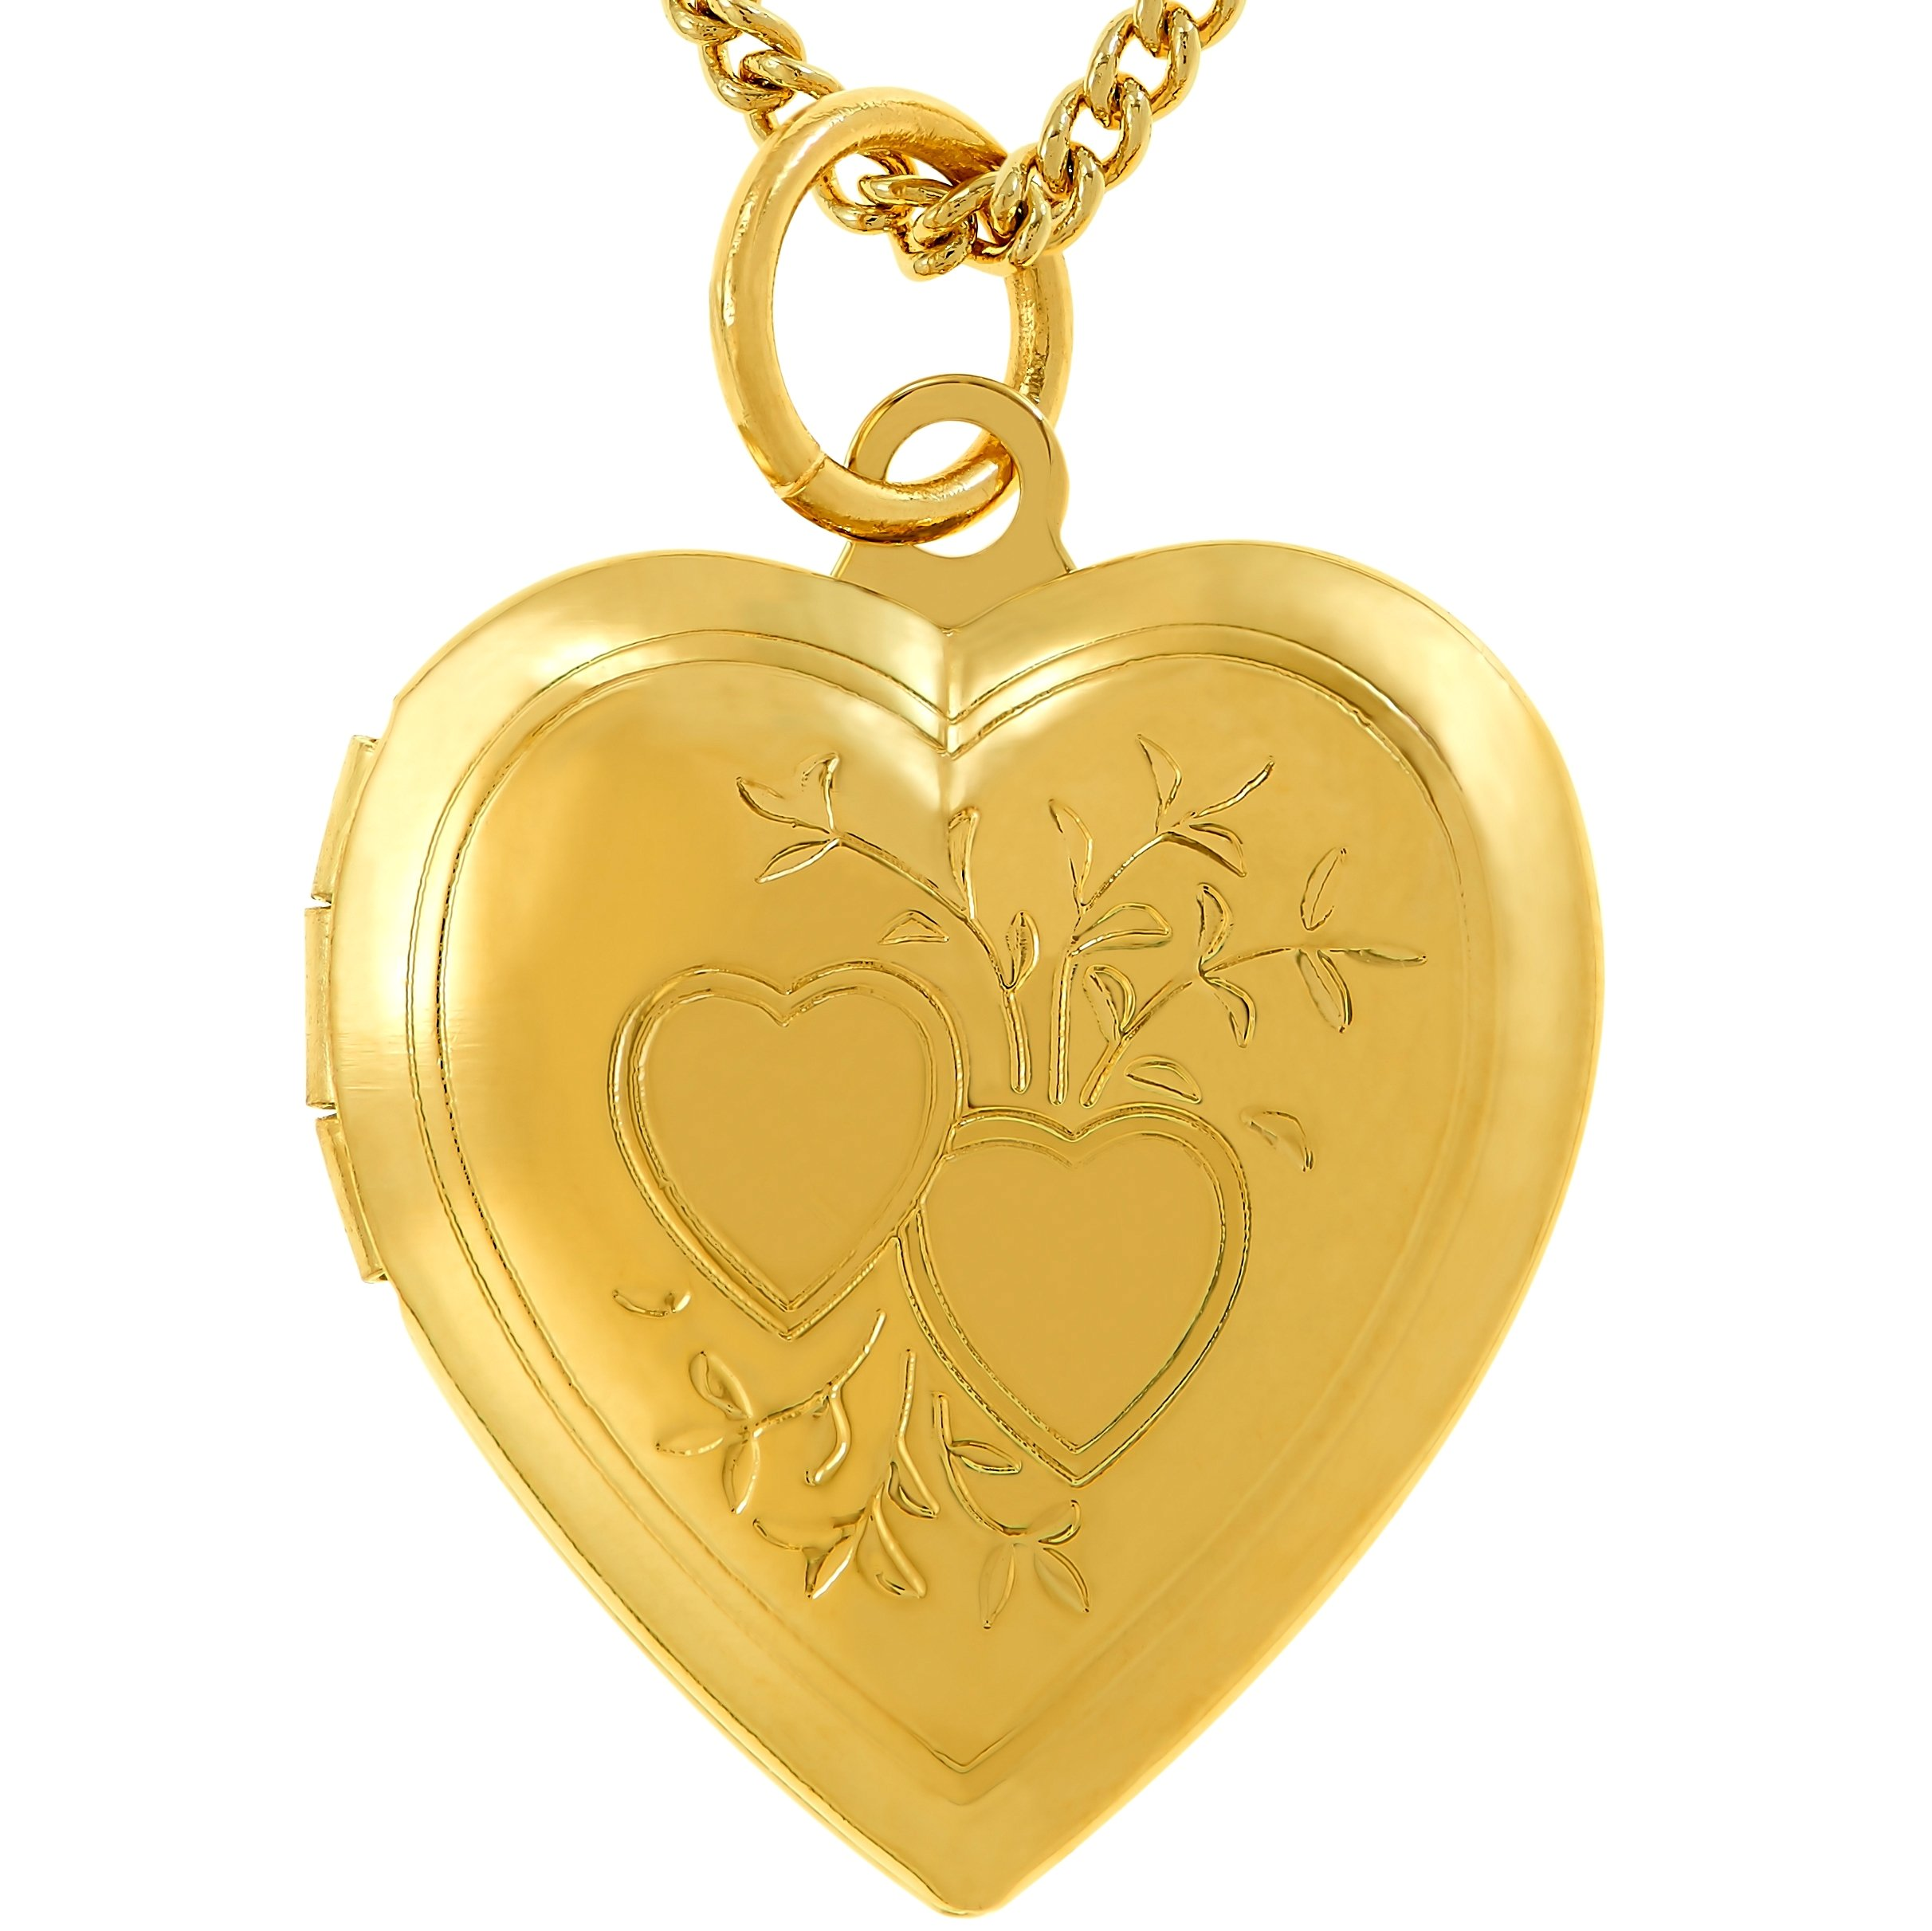 Lifetime Jewelry Heart Locket For Pictures, Double Heart Design, 24K Gold Over Bronze (Locket & Chain)